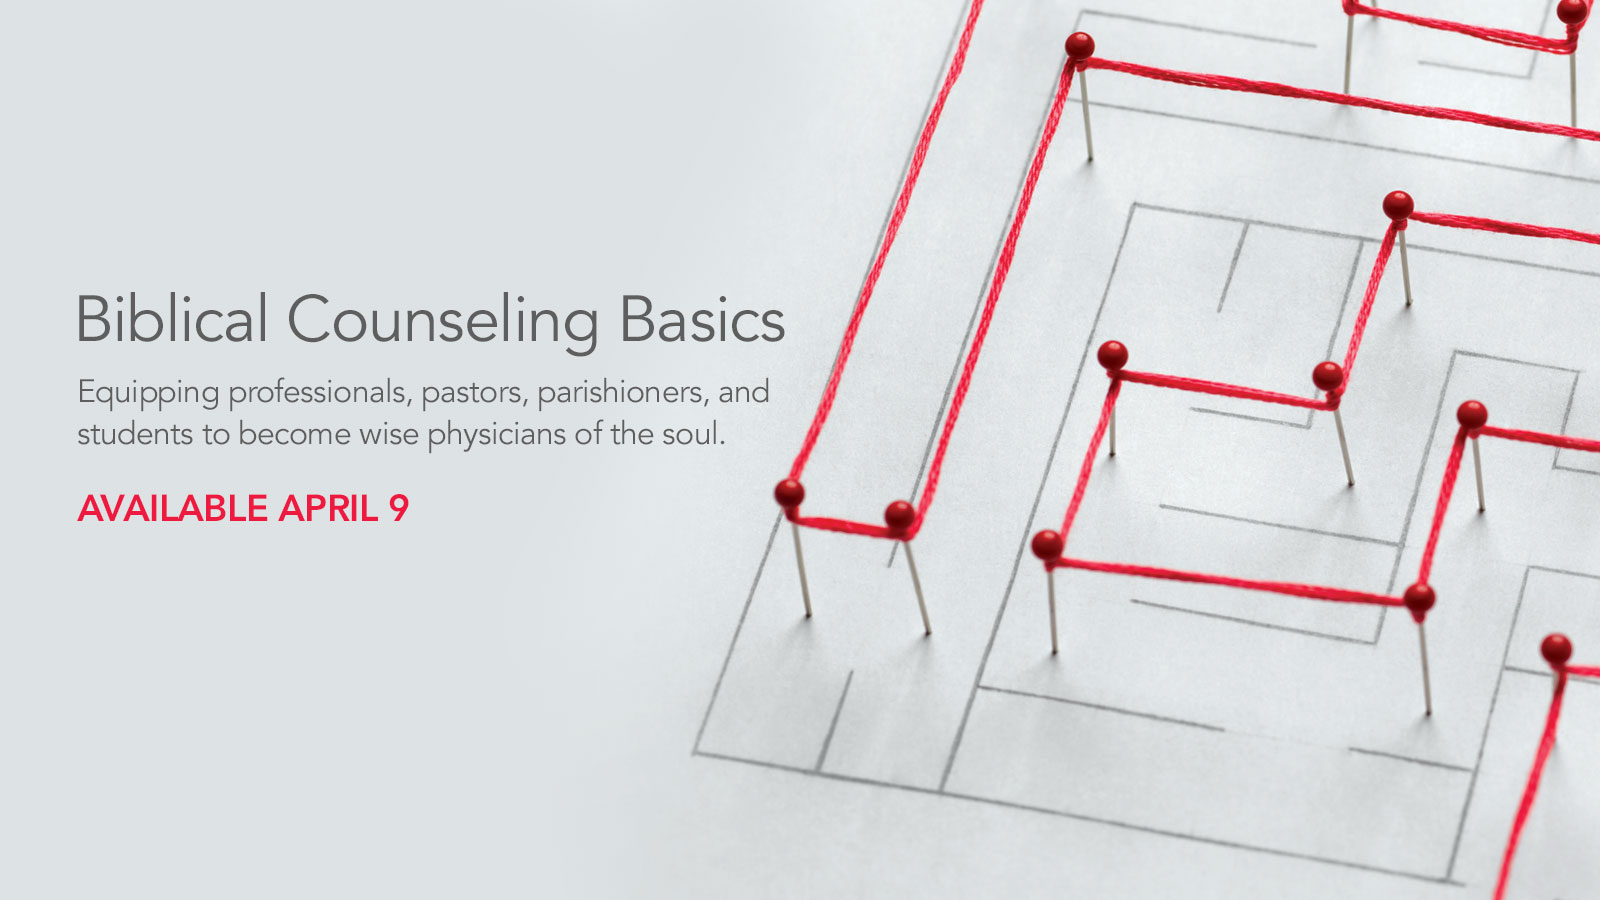 Biblical Counseling Basics